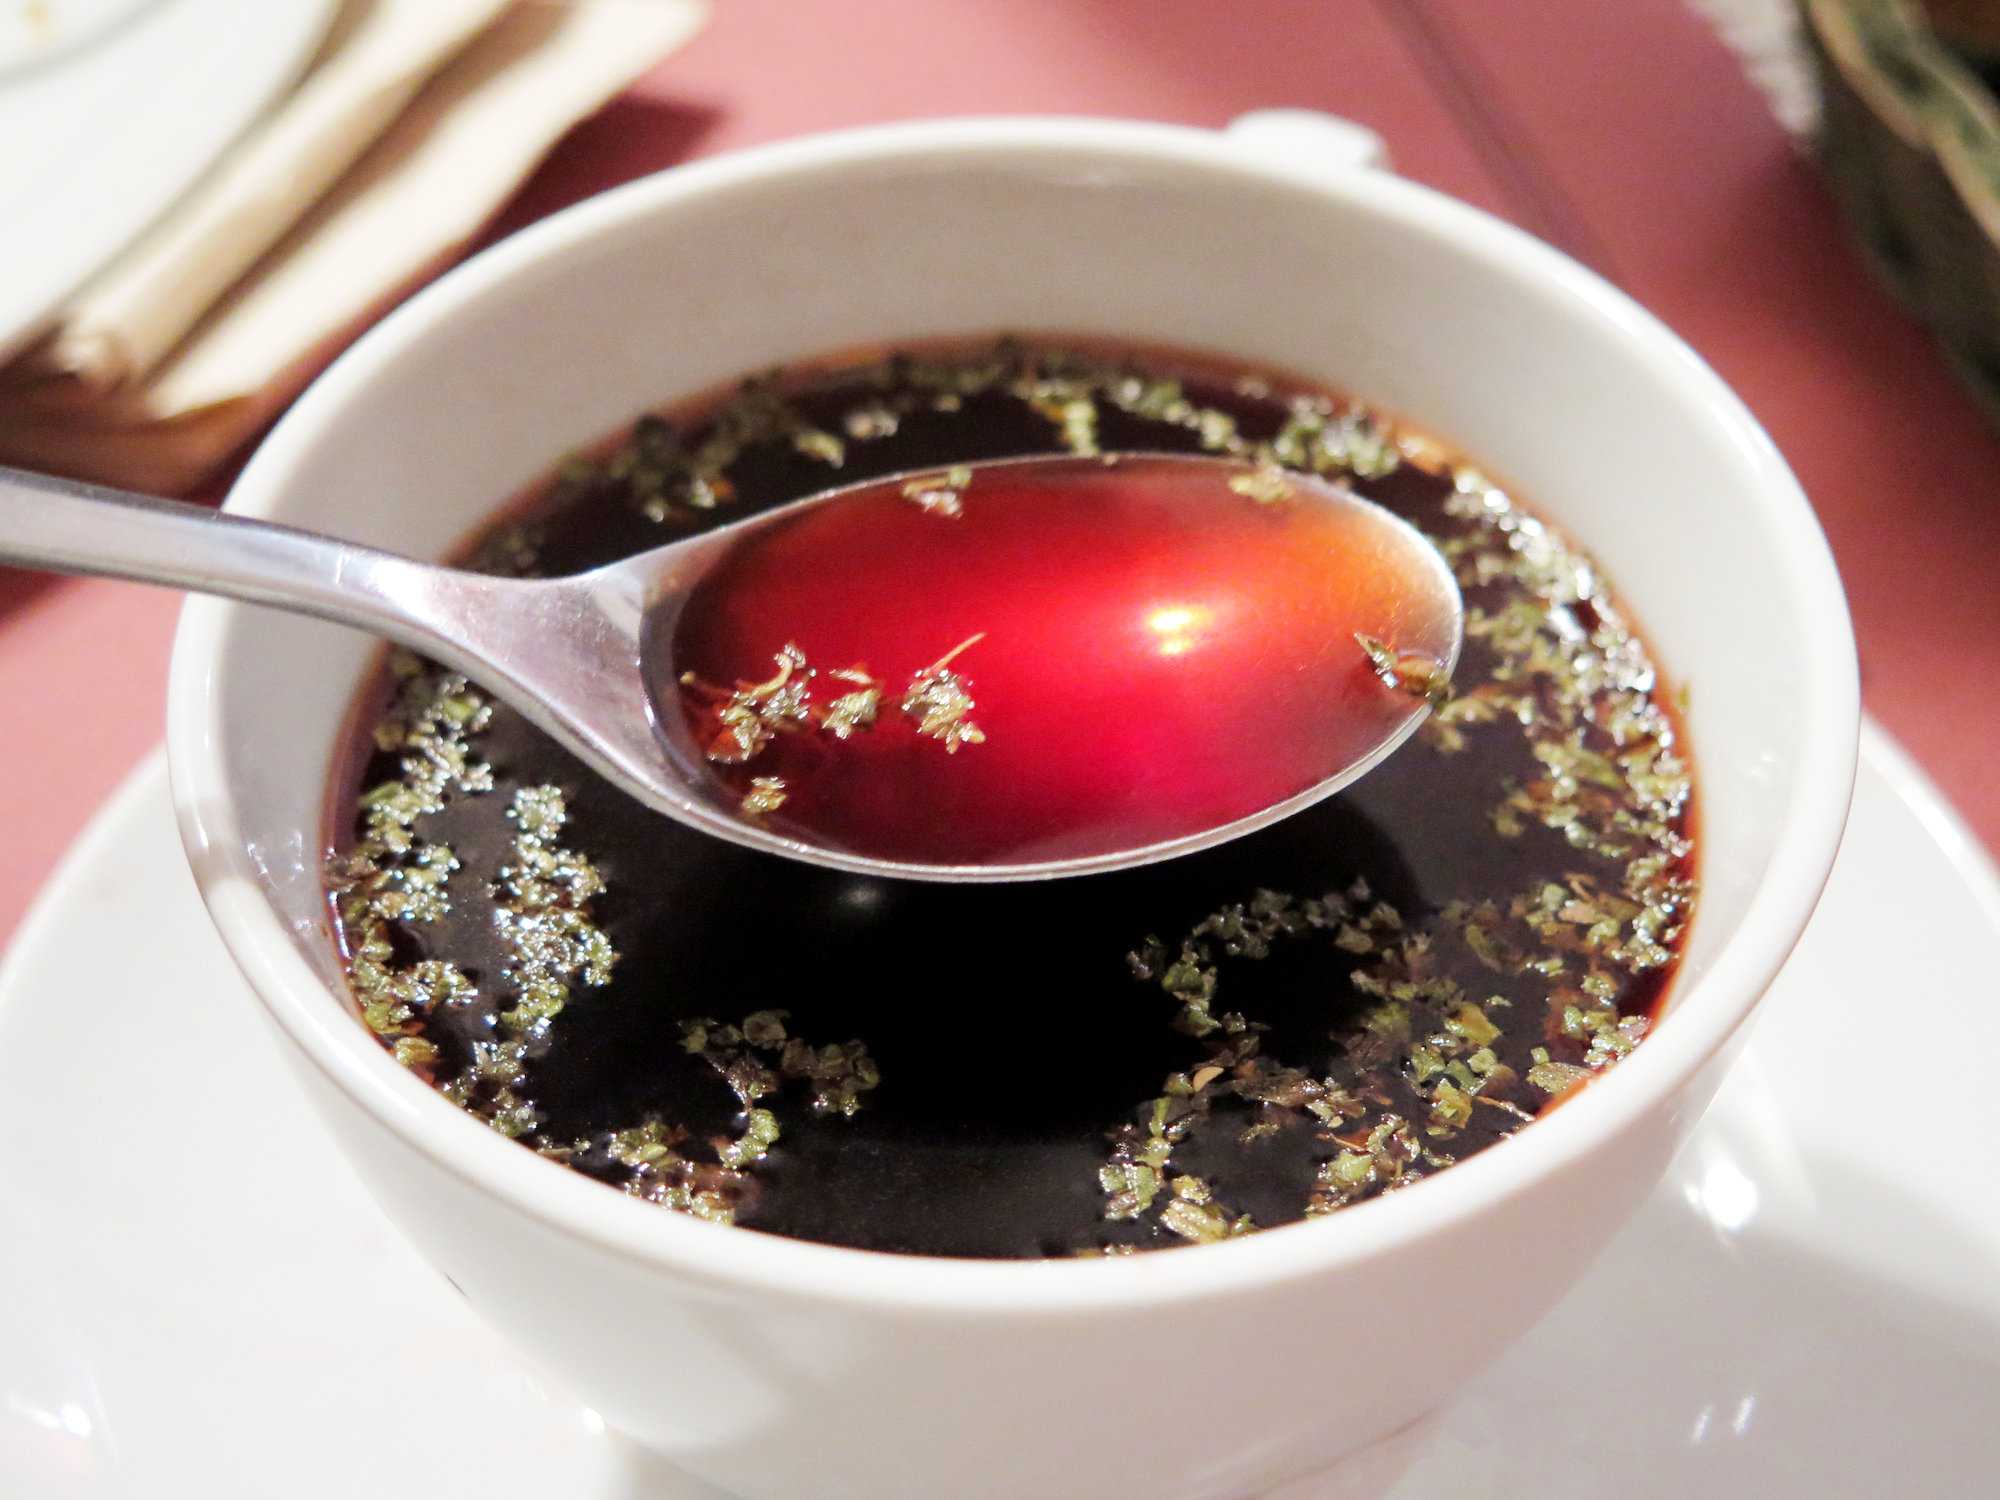 Beetroot soup with oregano